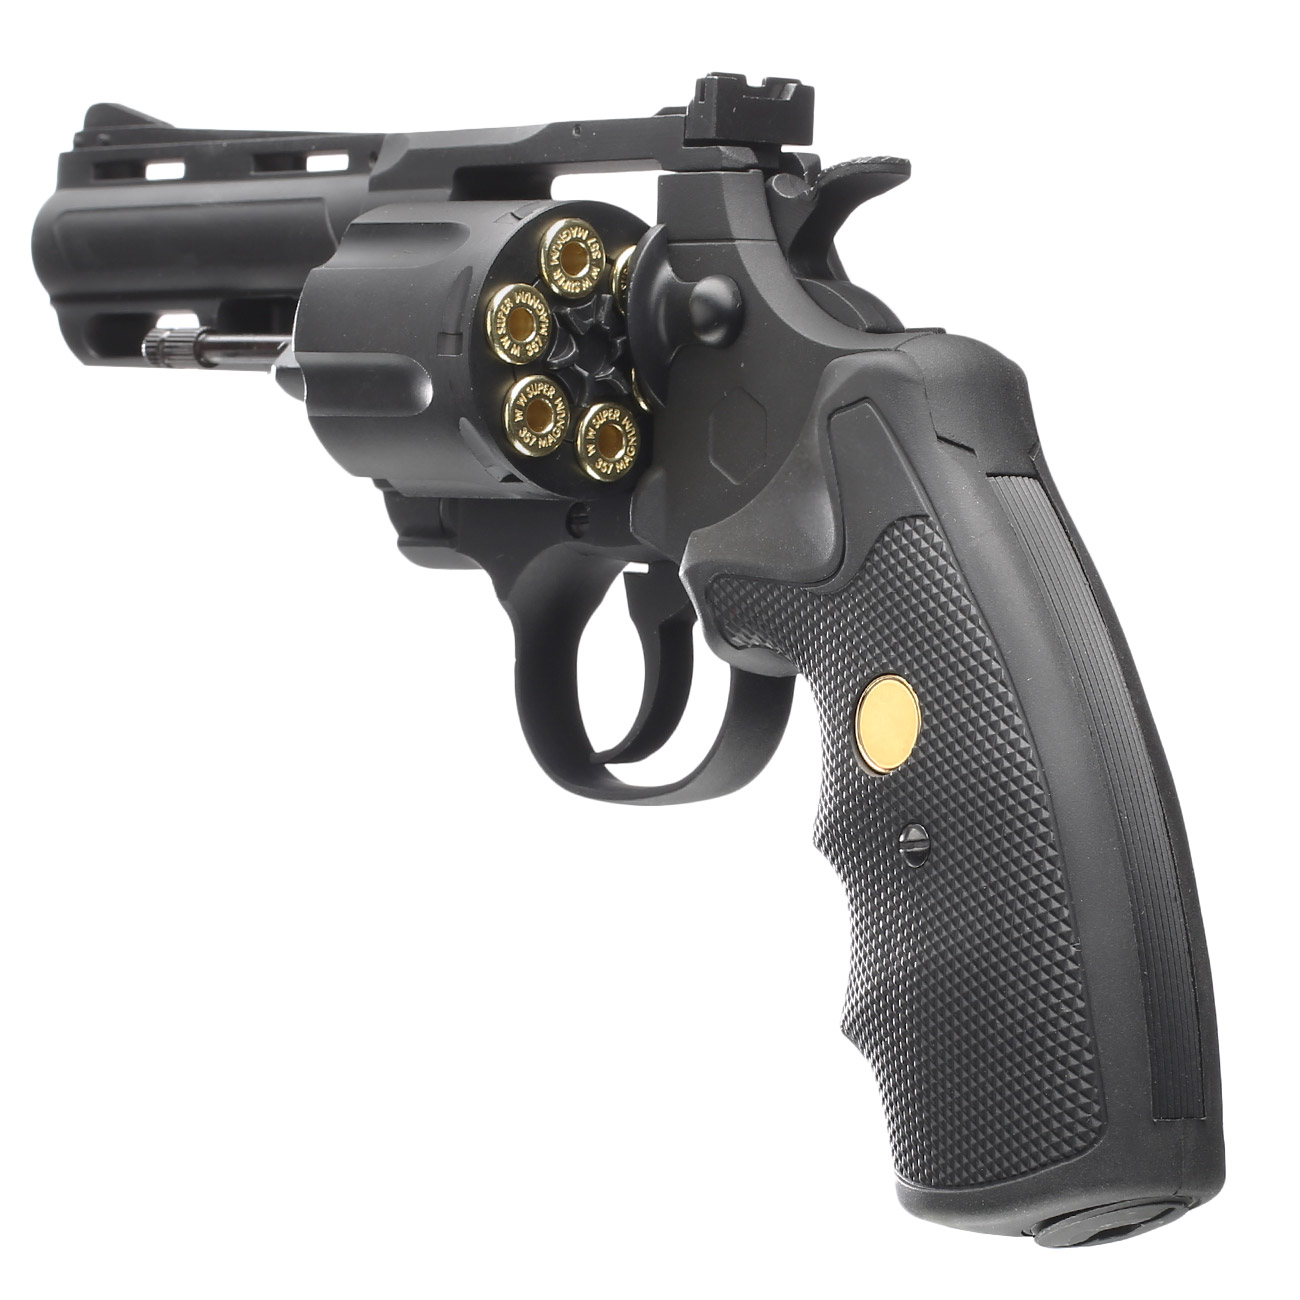 King Arms .357 Magnum Custom I 4 Zoll Revolver Vollmetall CO2 6mm BB schwarz 5